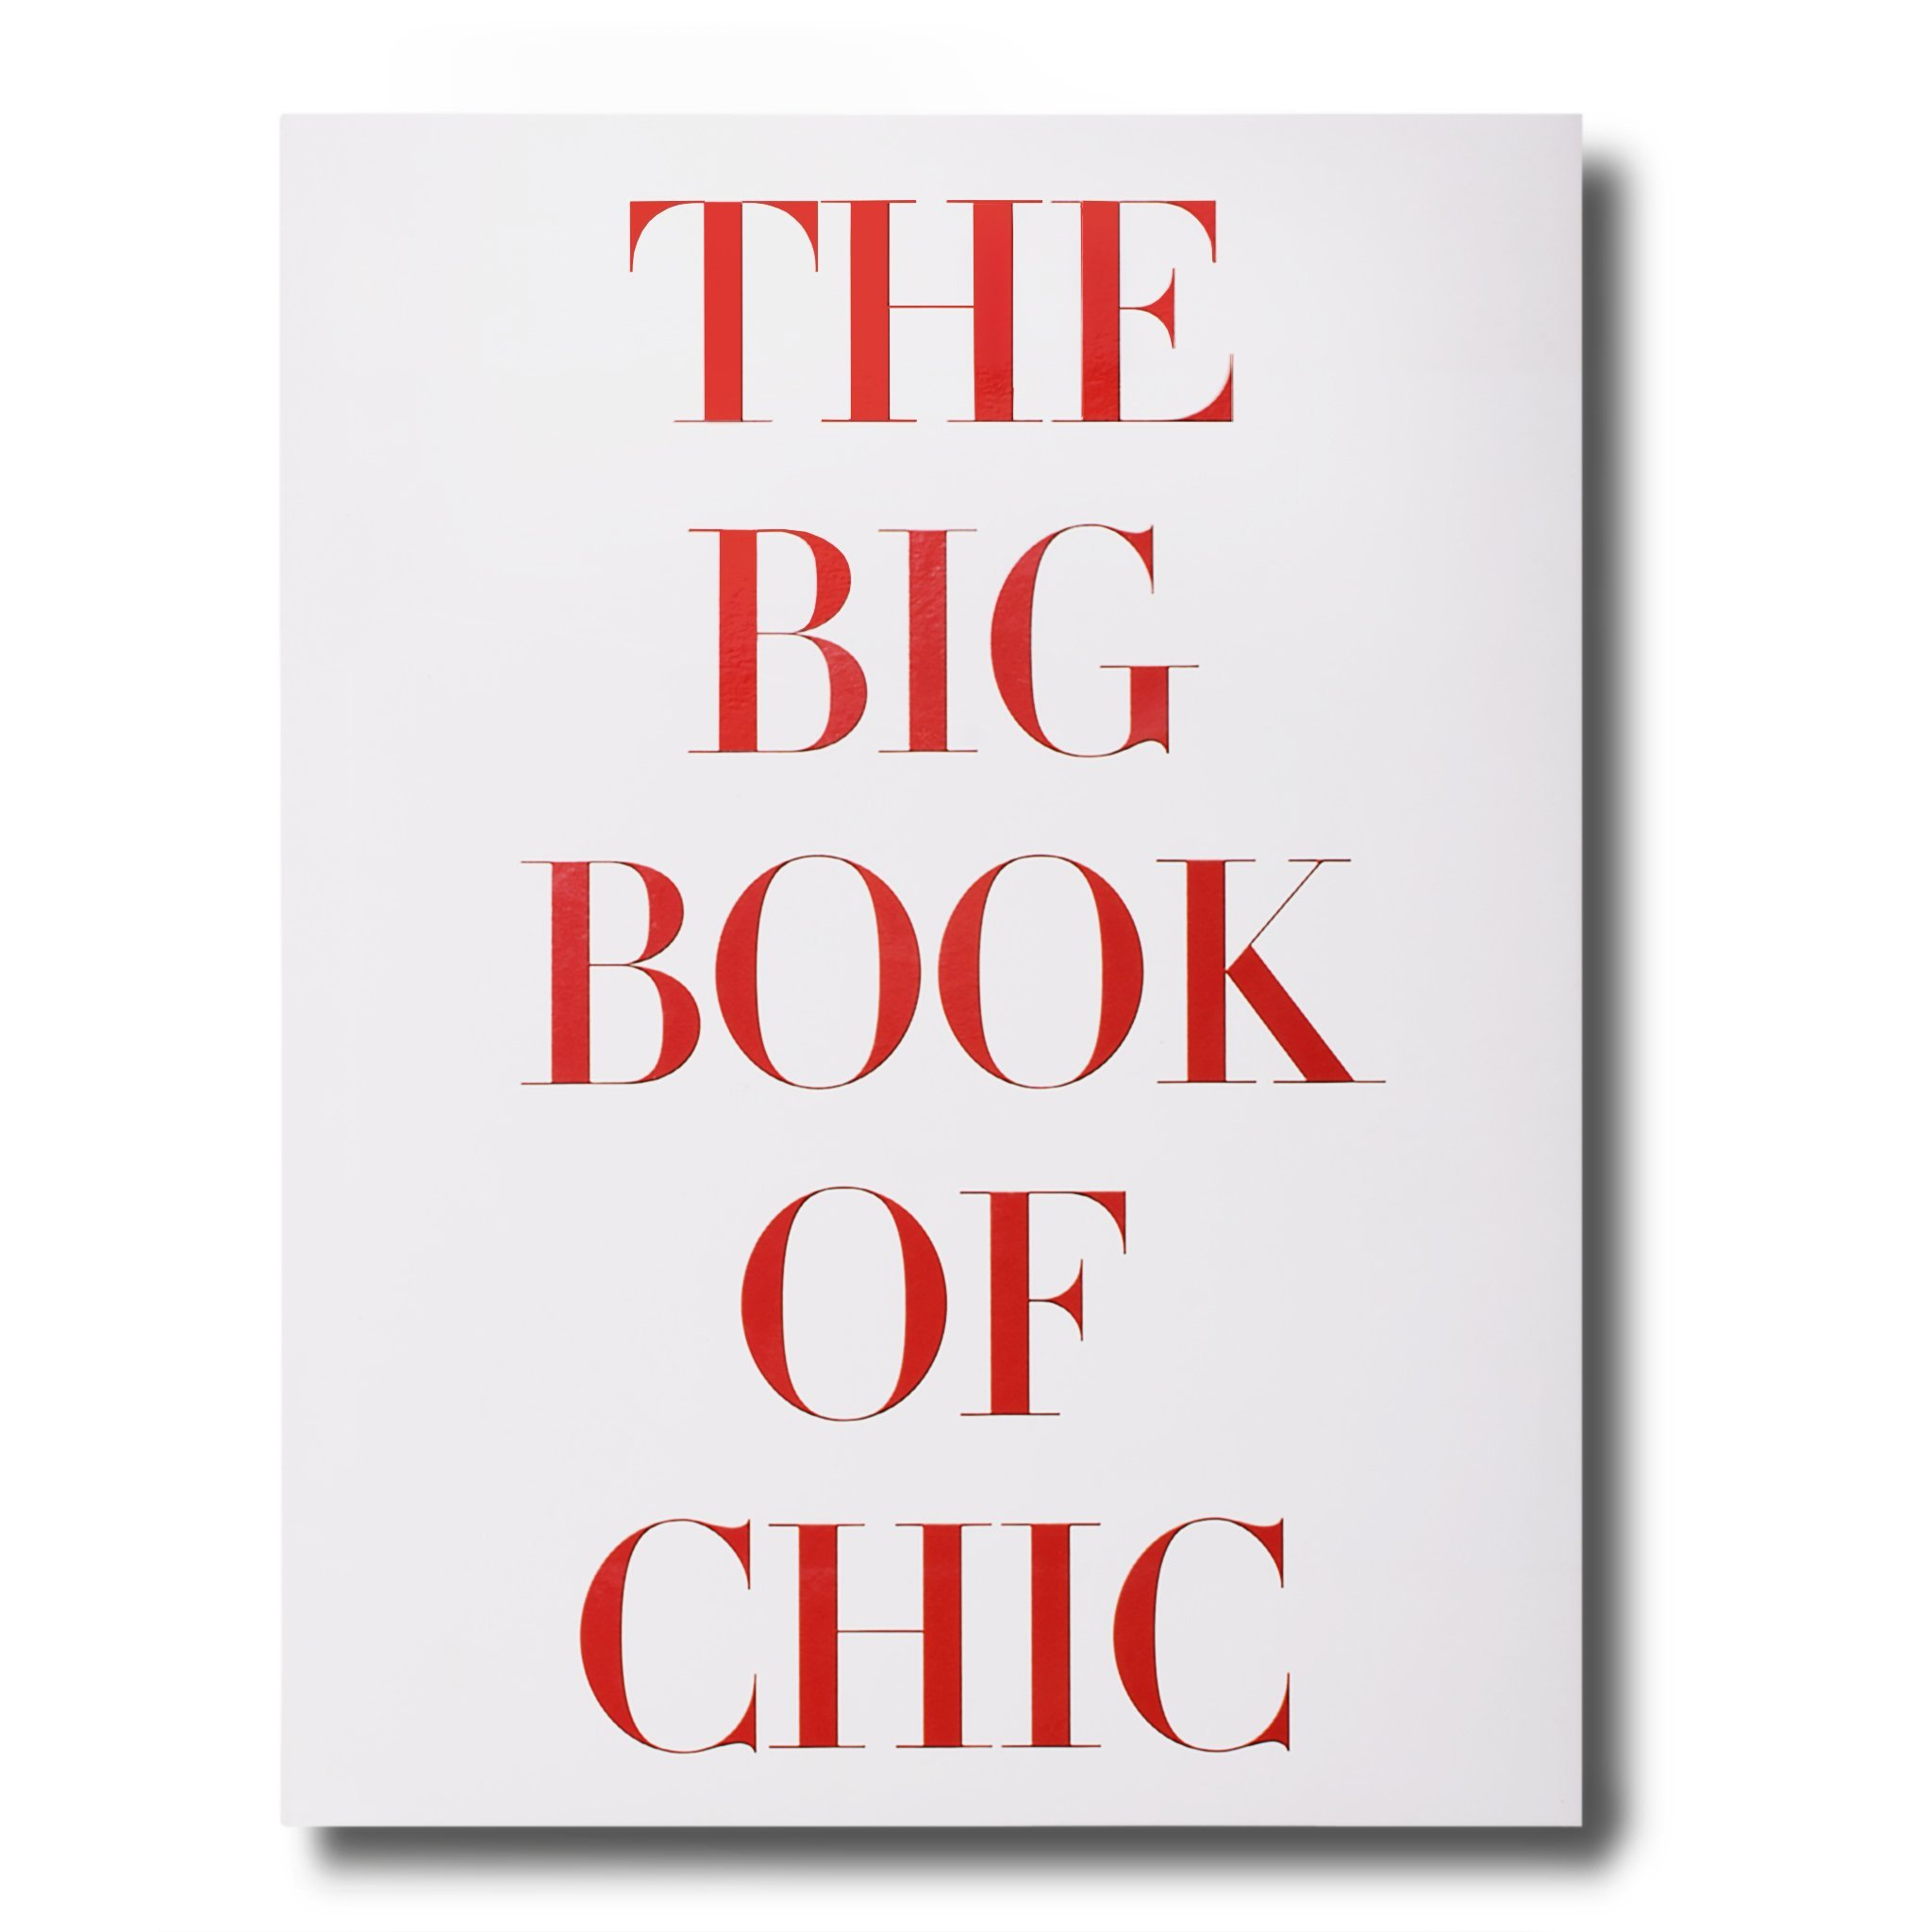 AS BIG-BOOK-OF-CHIC-A_2048x.jpg